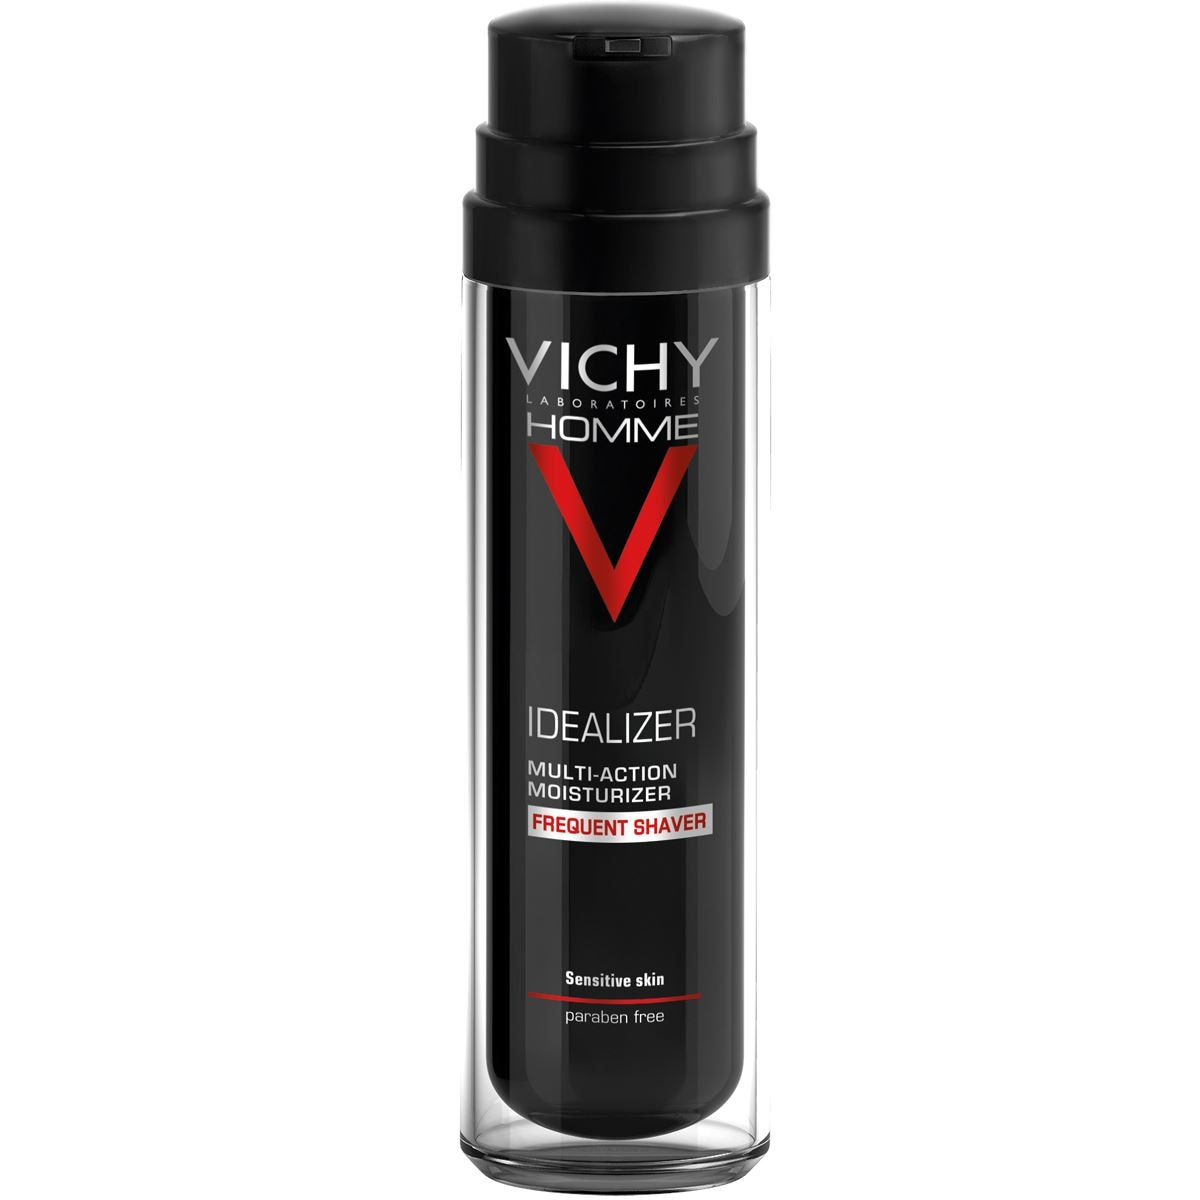 Vichy Homme Idealizer Frecuant Shaver